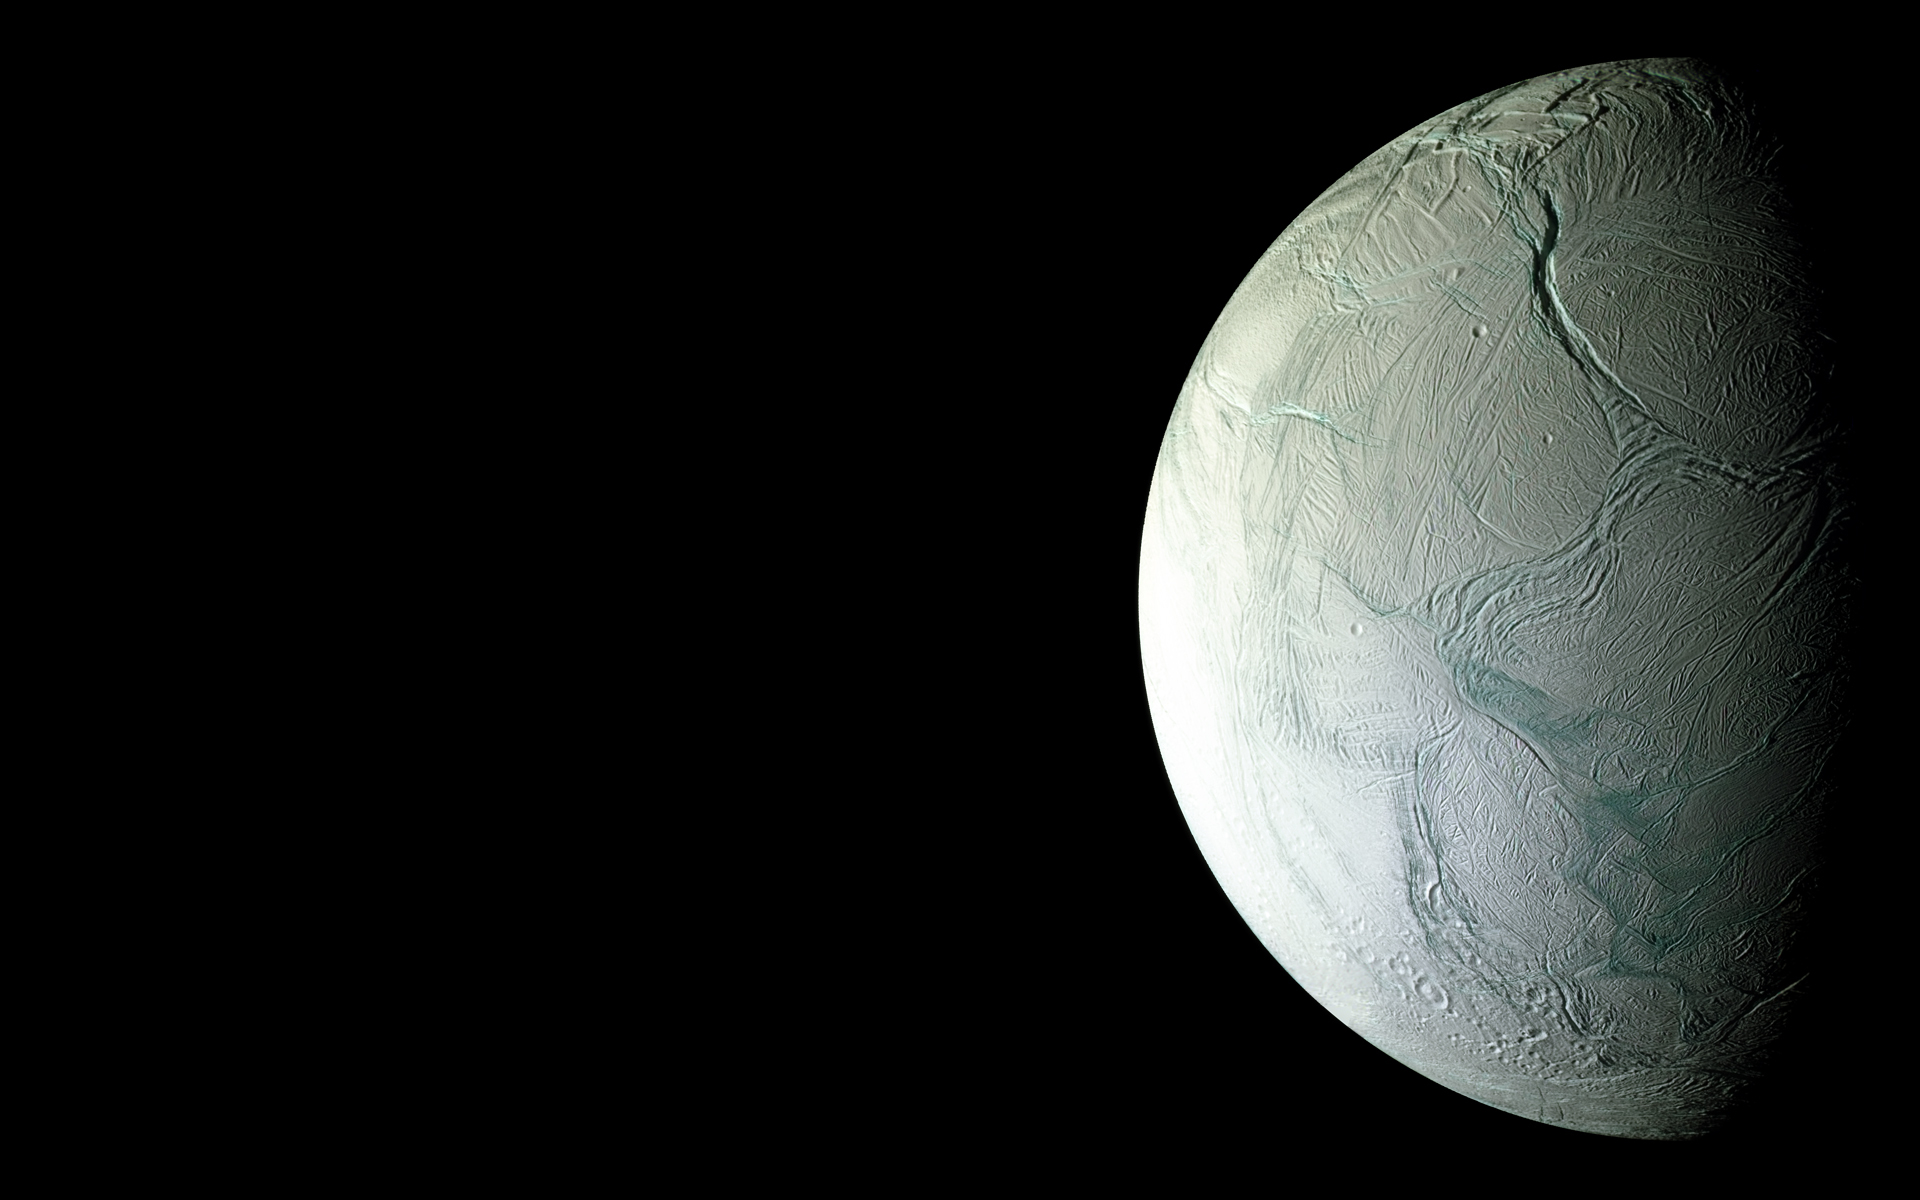 outer space moon Enceladus